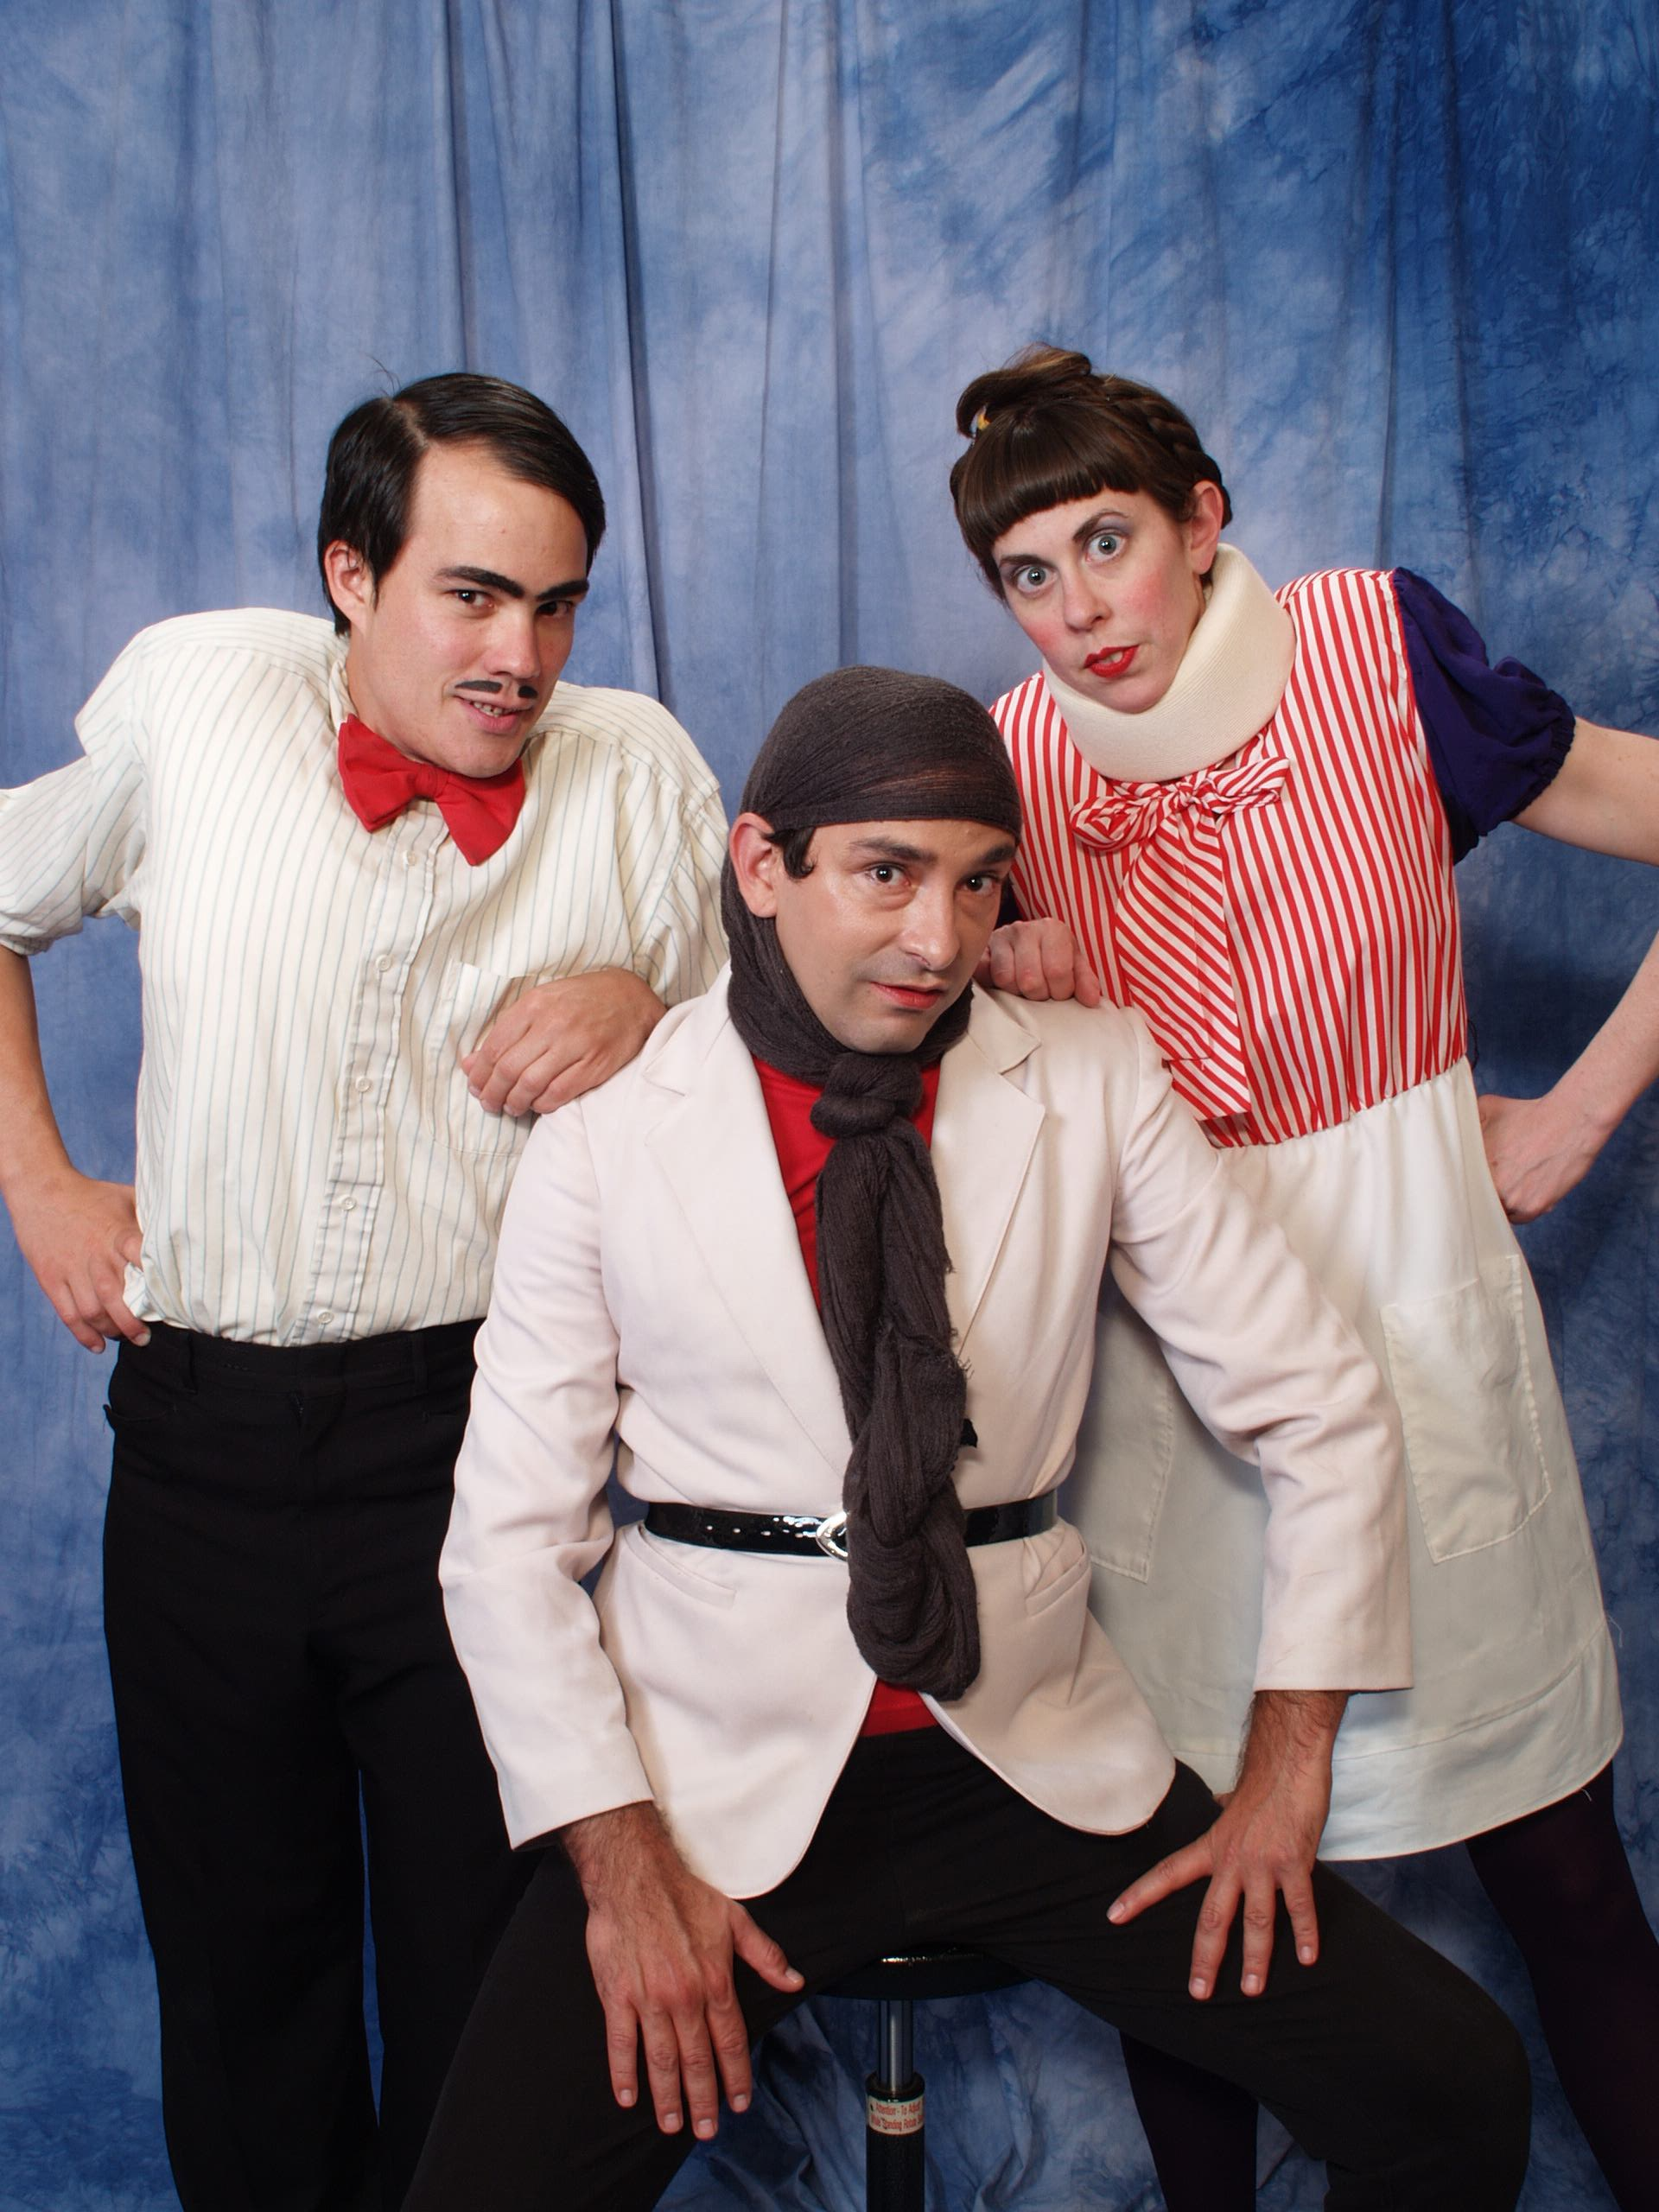 Matt Chapman, Sarah Petersiel and Josh Matthews (front) as The Huchinson Family Players from Under the Table's current touring show  The Hunchbacks of Notre Dame.